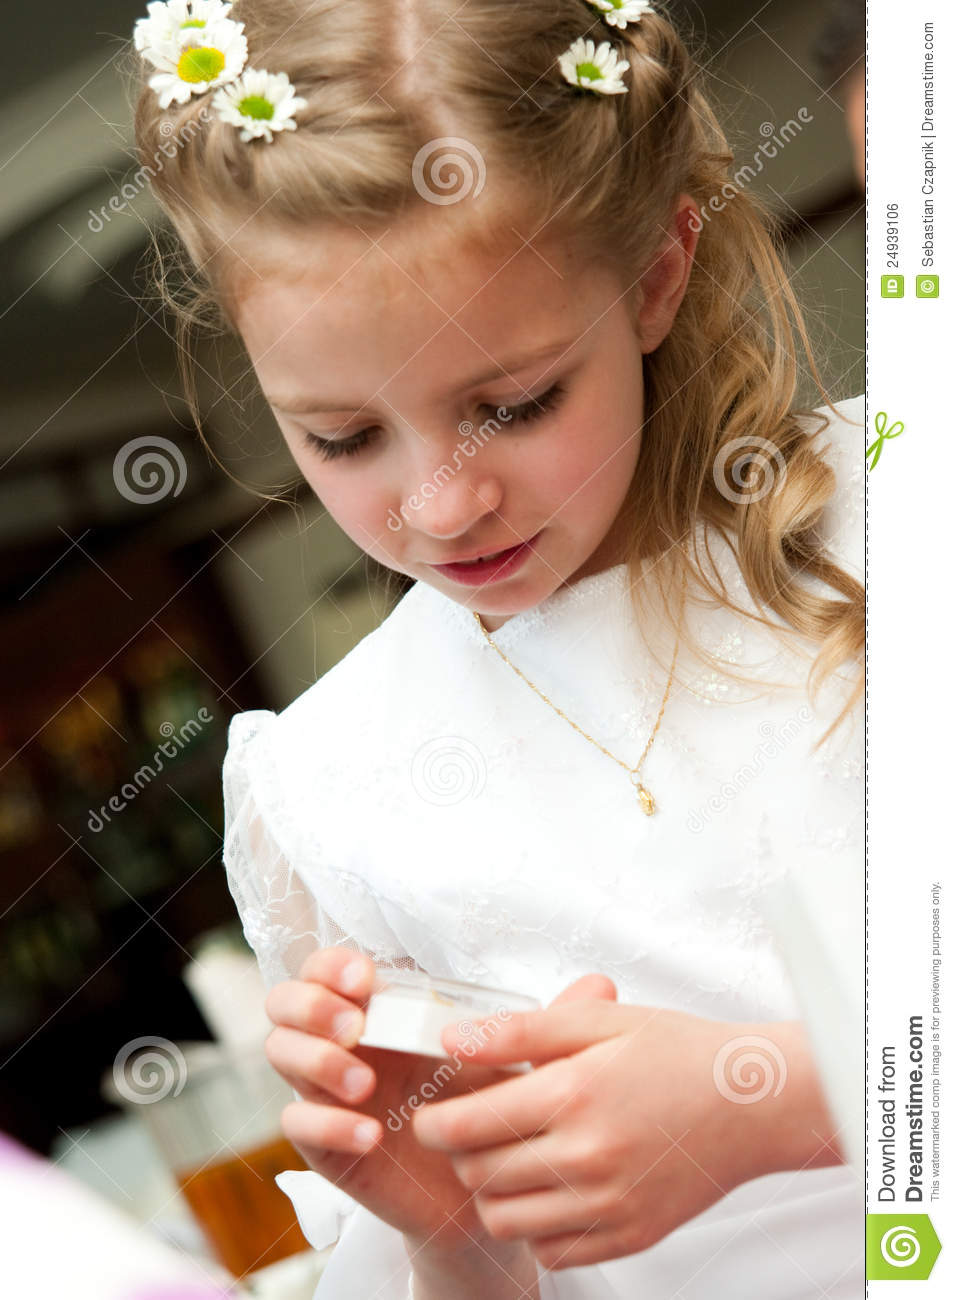 Young girl has received her first holy communion gift.